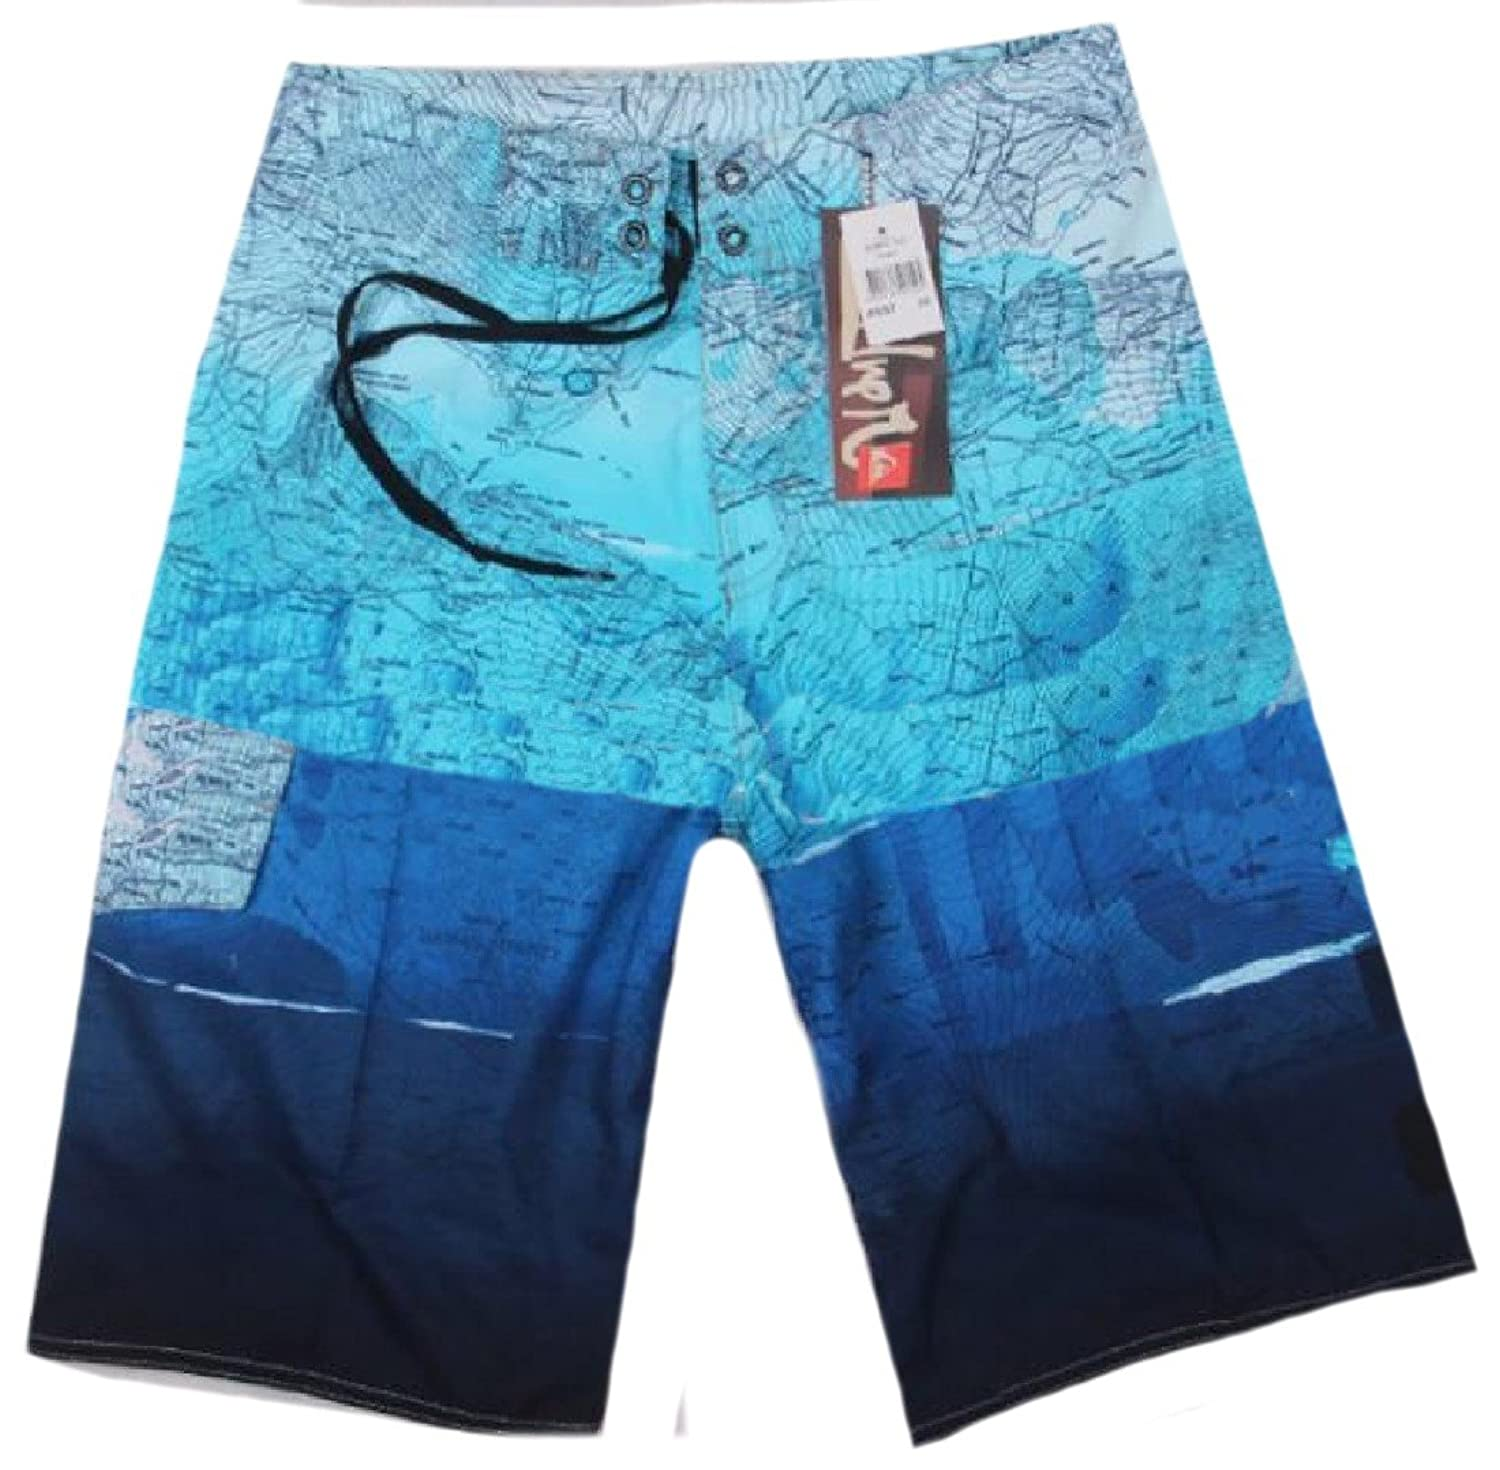 Abetteric Men Quick?Dry Casual-pants Breathable Stretch Beach Shorts